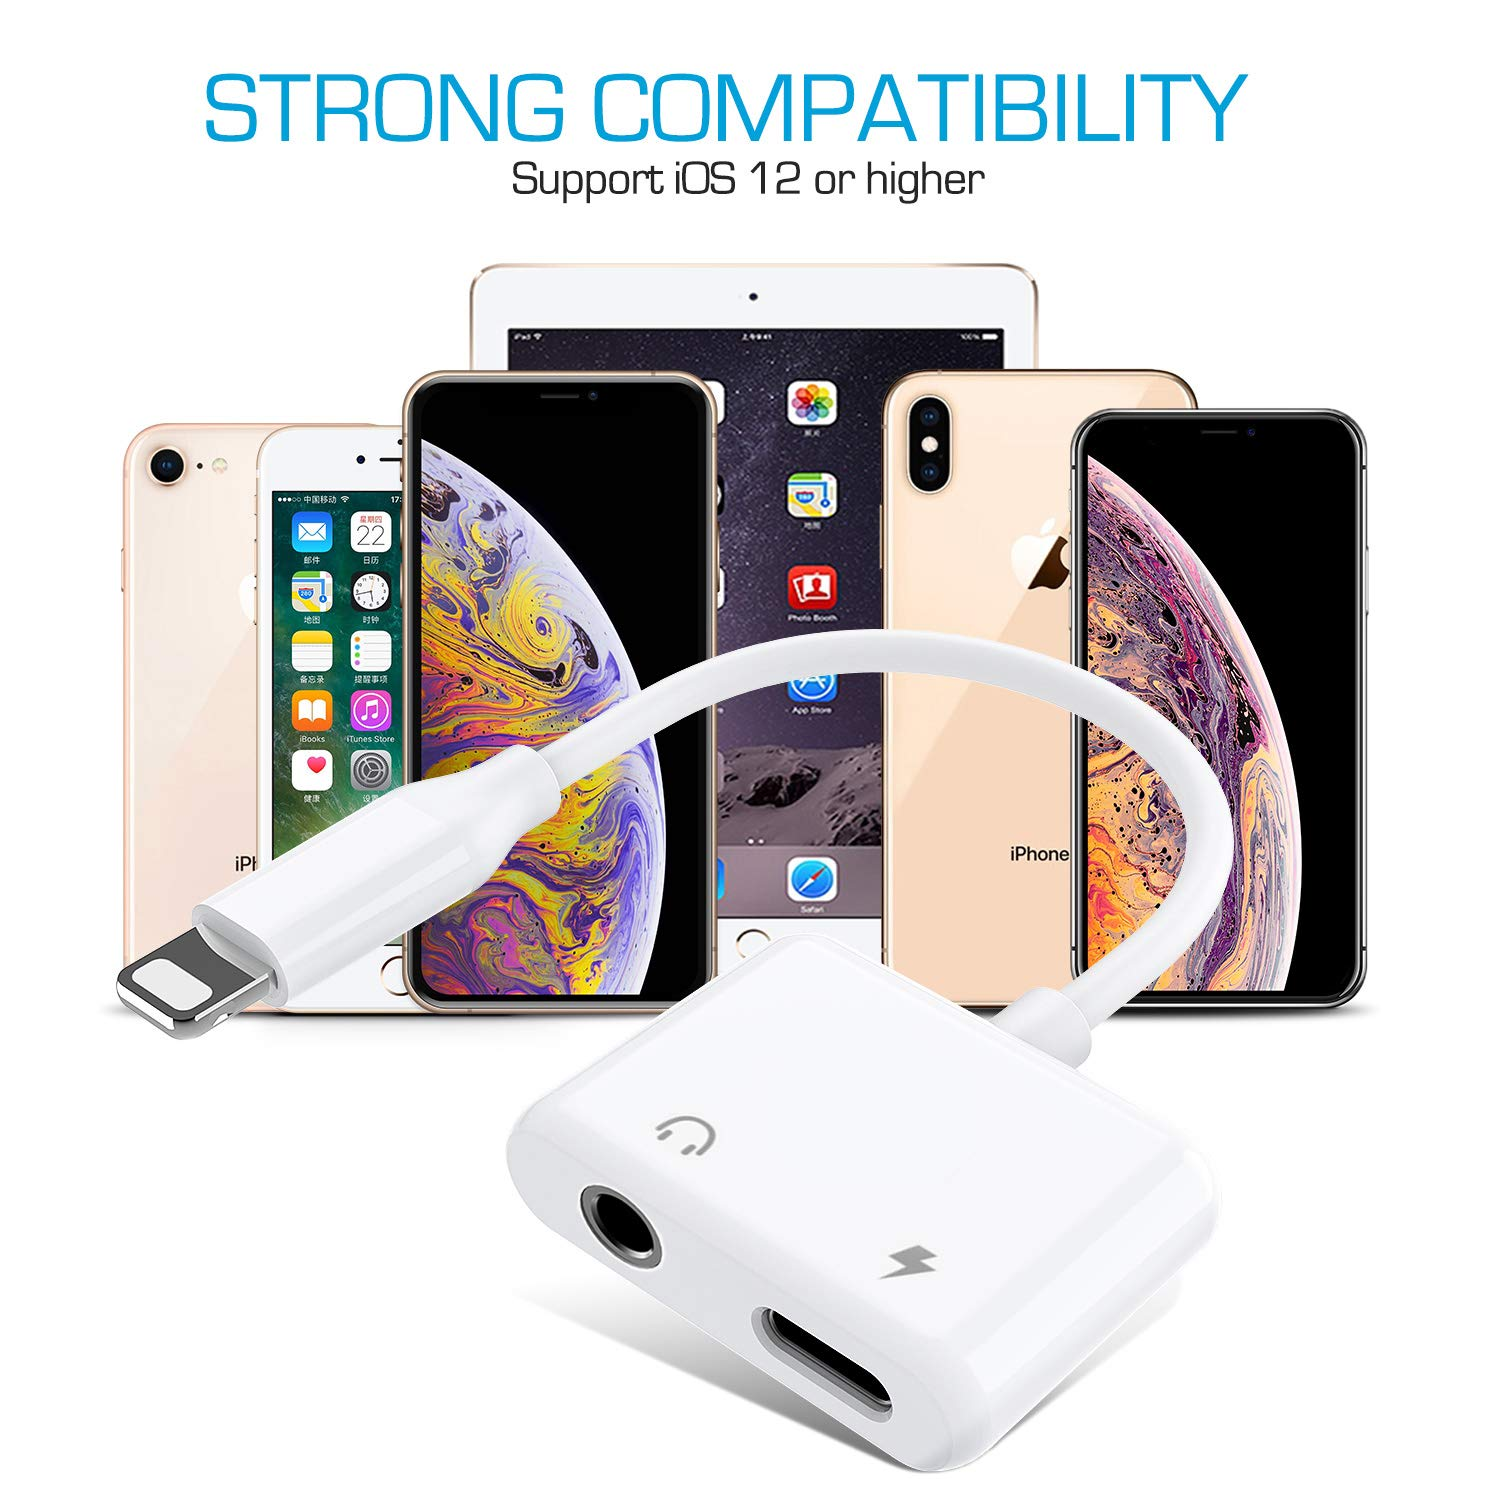 Universal Car Charger Dual Port USB Car Charger Adapter for iPhone X//8//8 plus//7//7 Plus//6s//6s Plus//6//6 Plus Samsung Note 8//S8//S8 Plus//S7 and Other USB Device